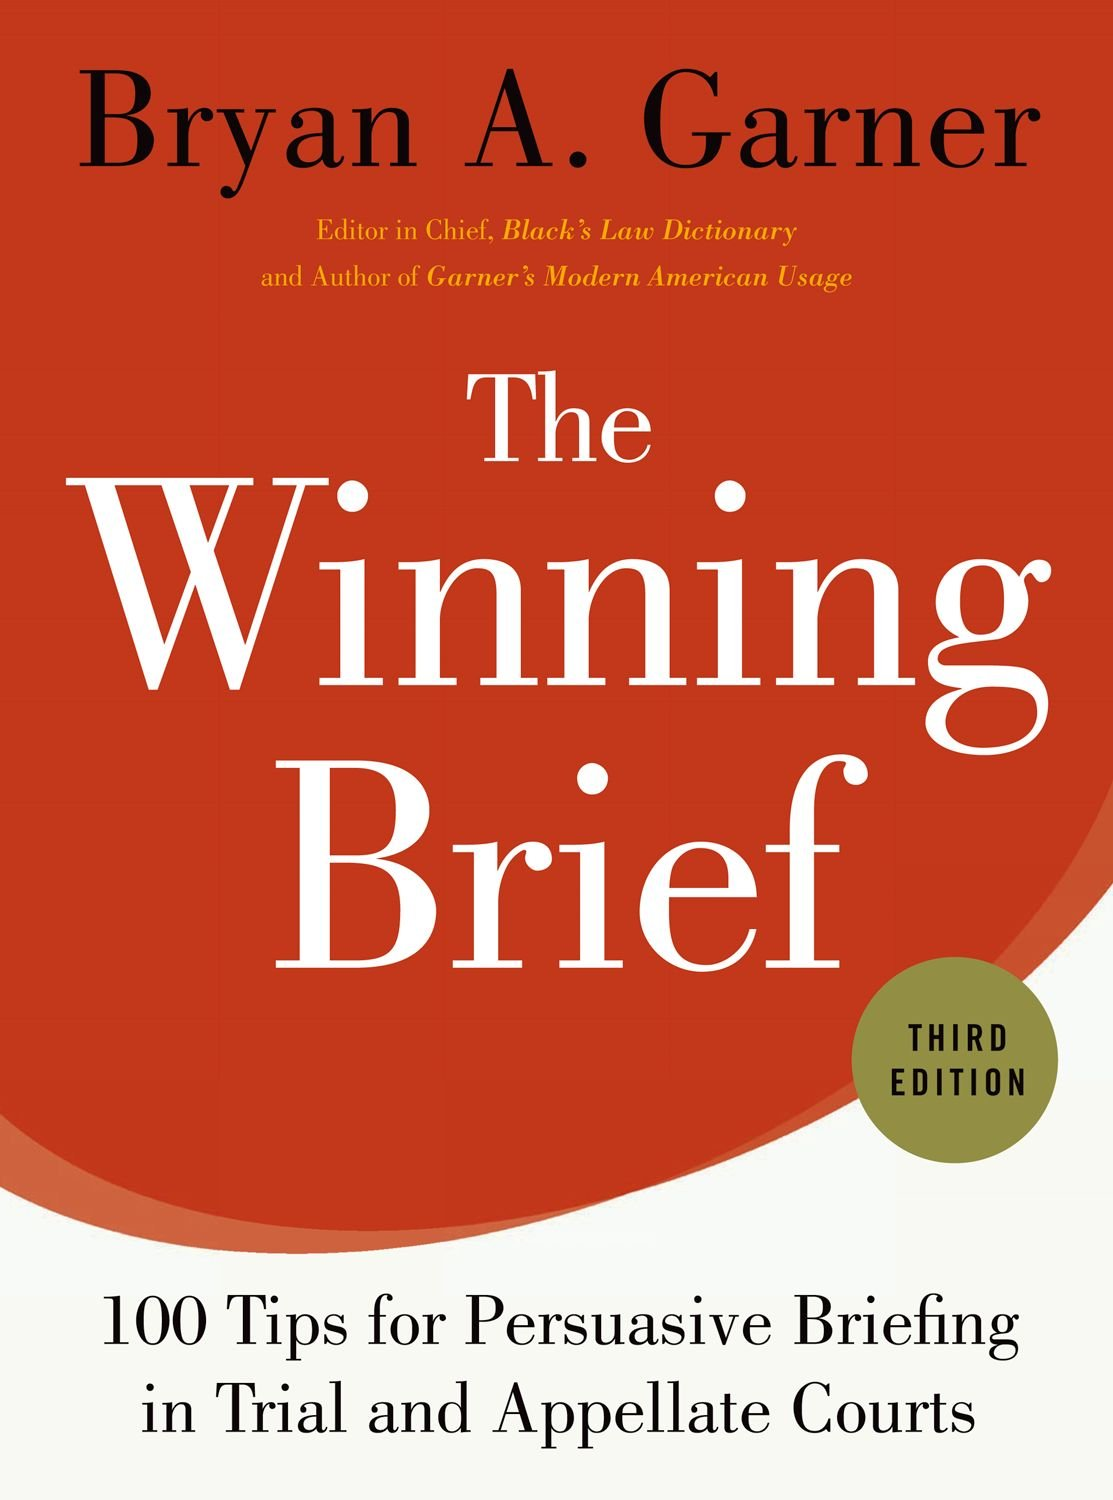 The Winning Brief: 100 Tips for Persuasive Briefing in Trial and Appellate Courts by Oxford University Press